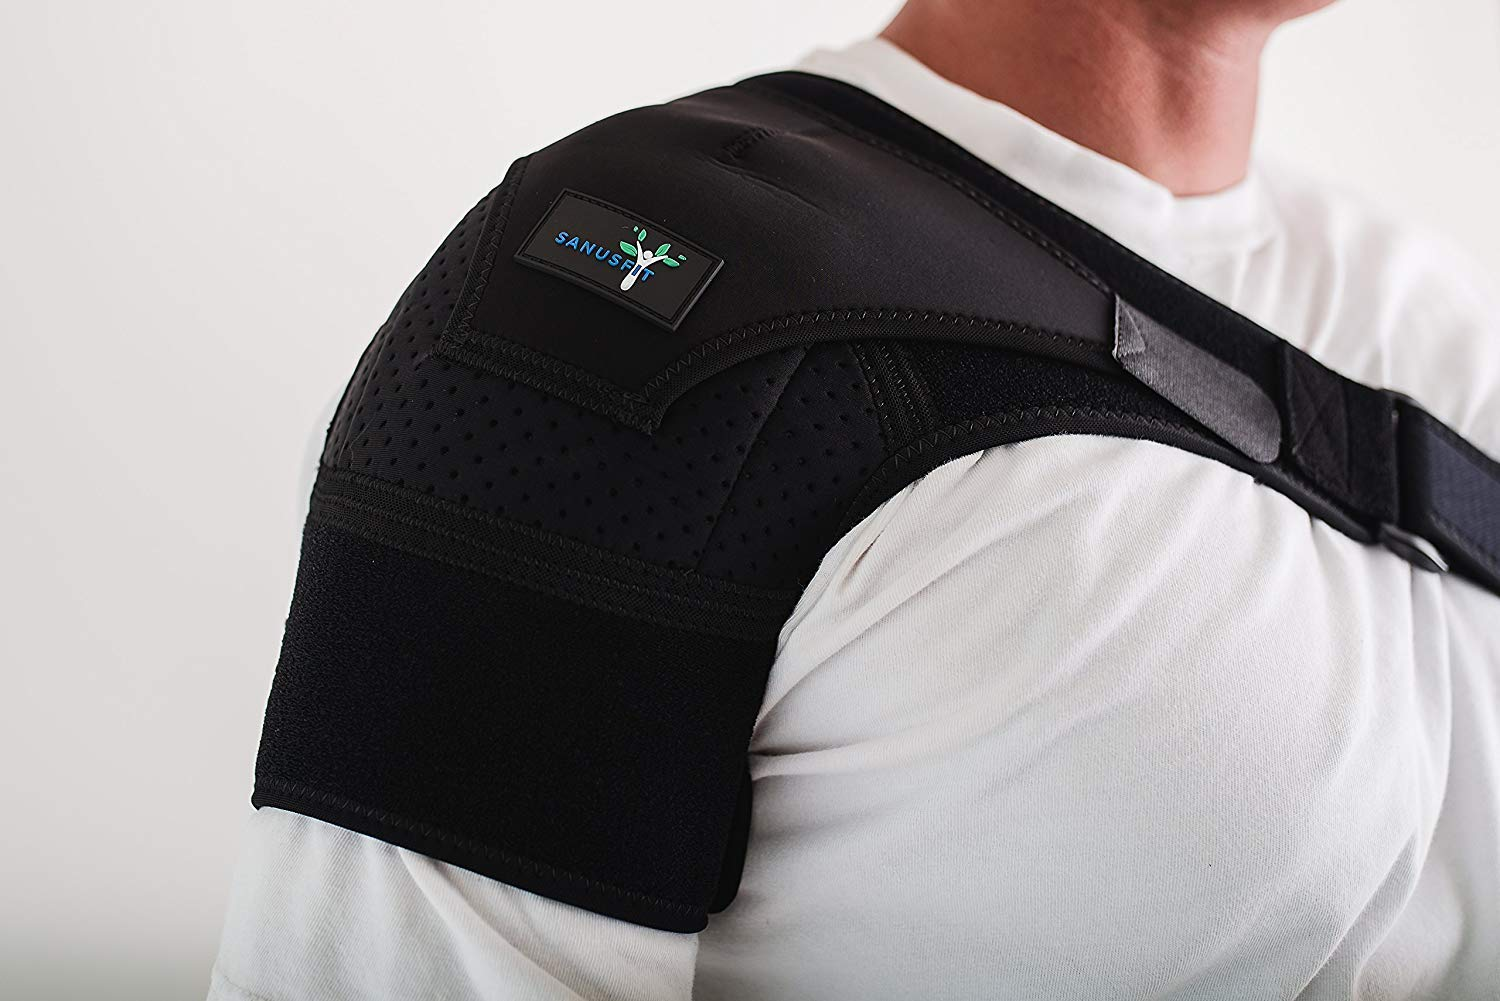 Shoulder Support Brace with Hot/Cold Therapy Included, Fully Adjustable for  Left or Right Shoulder,